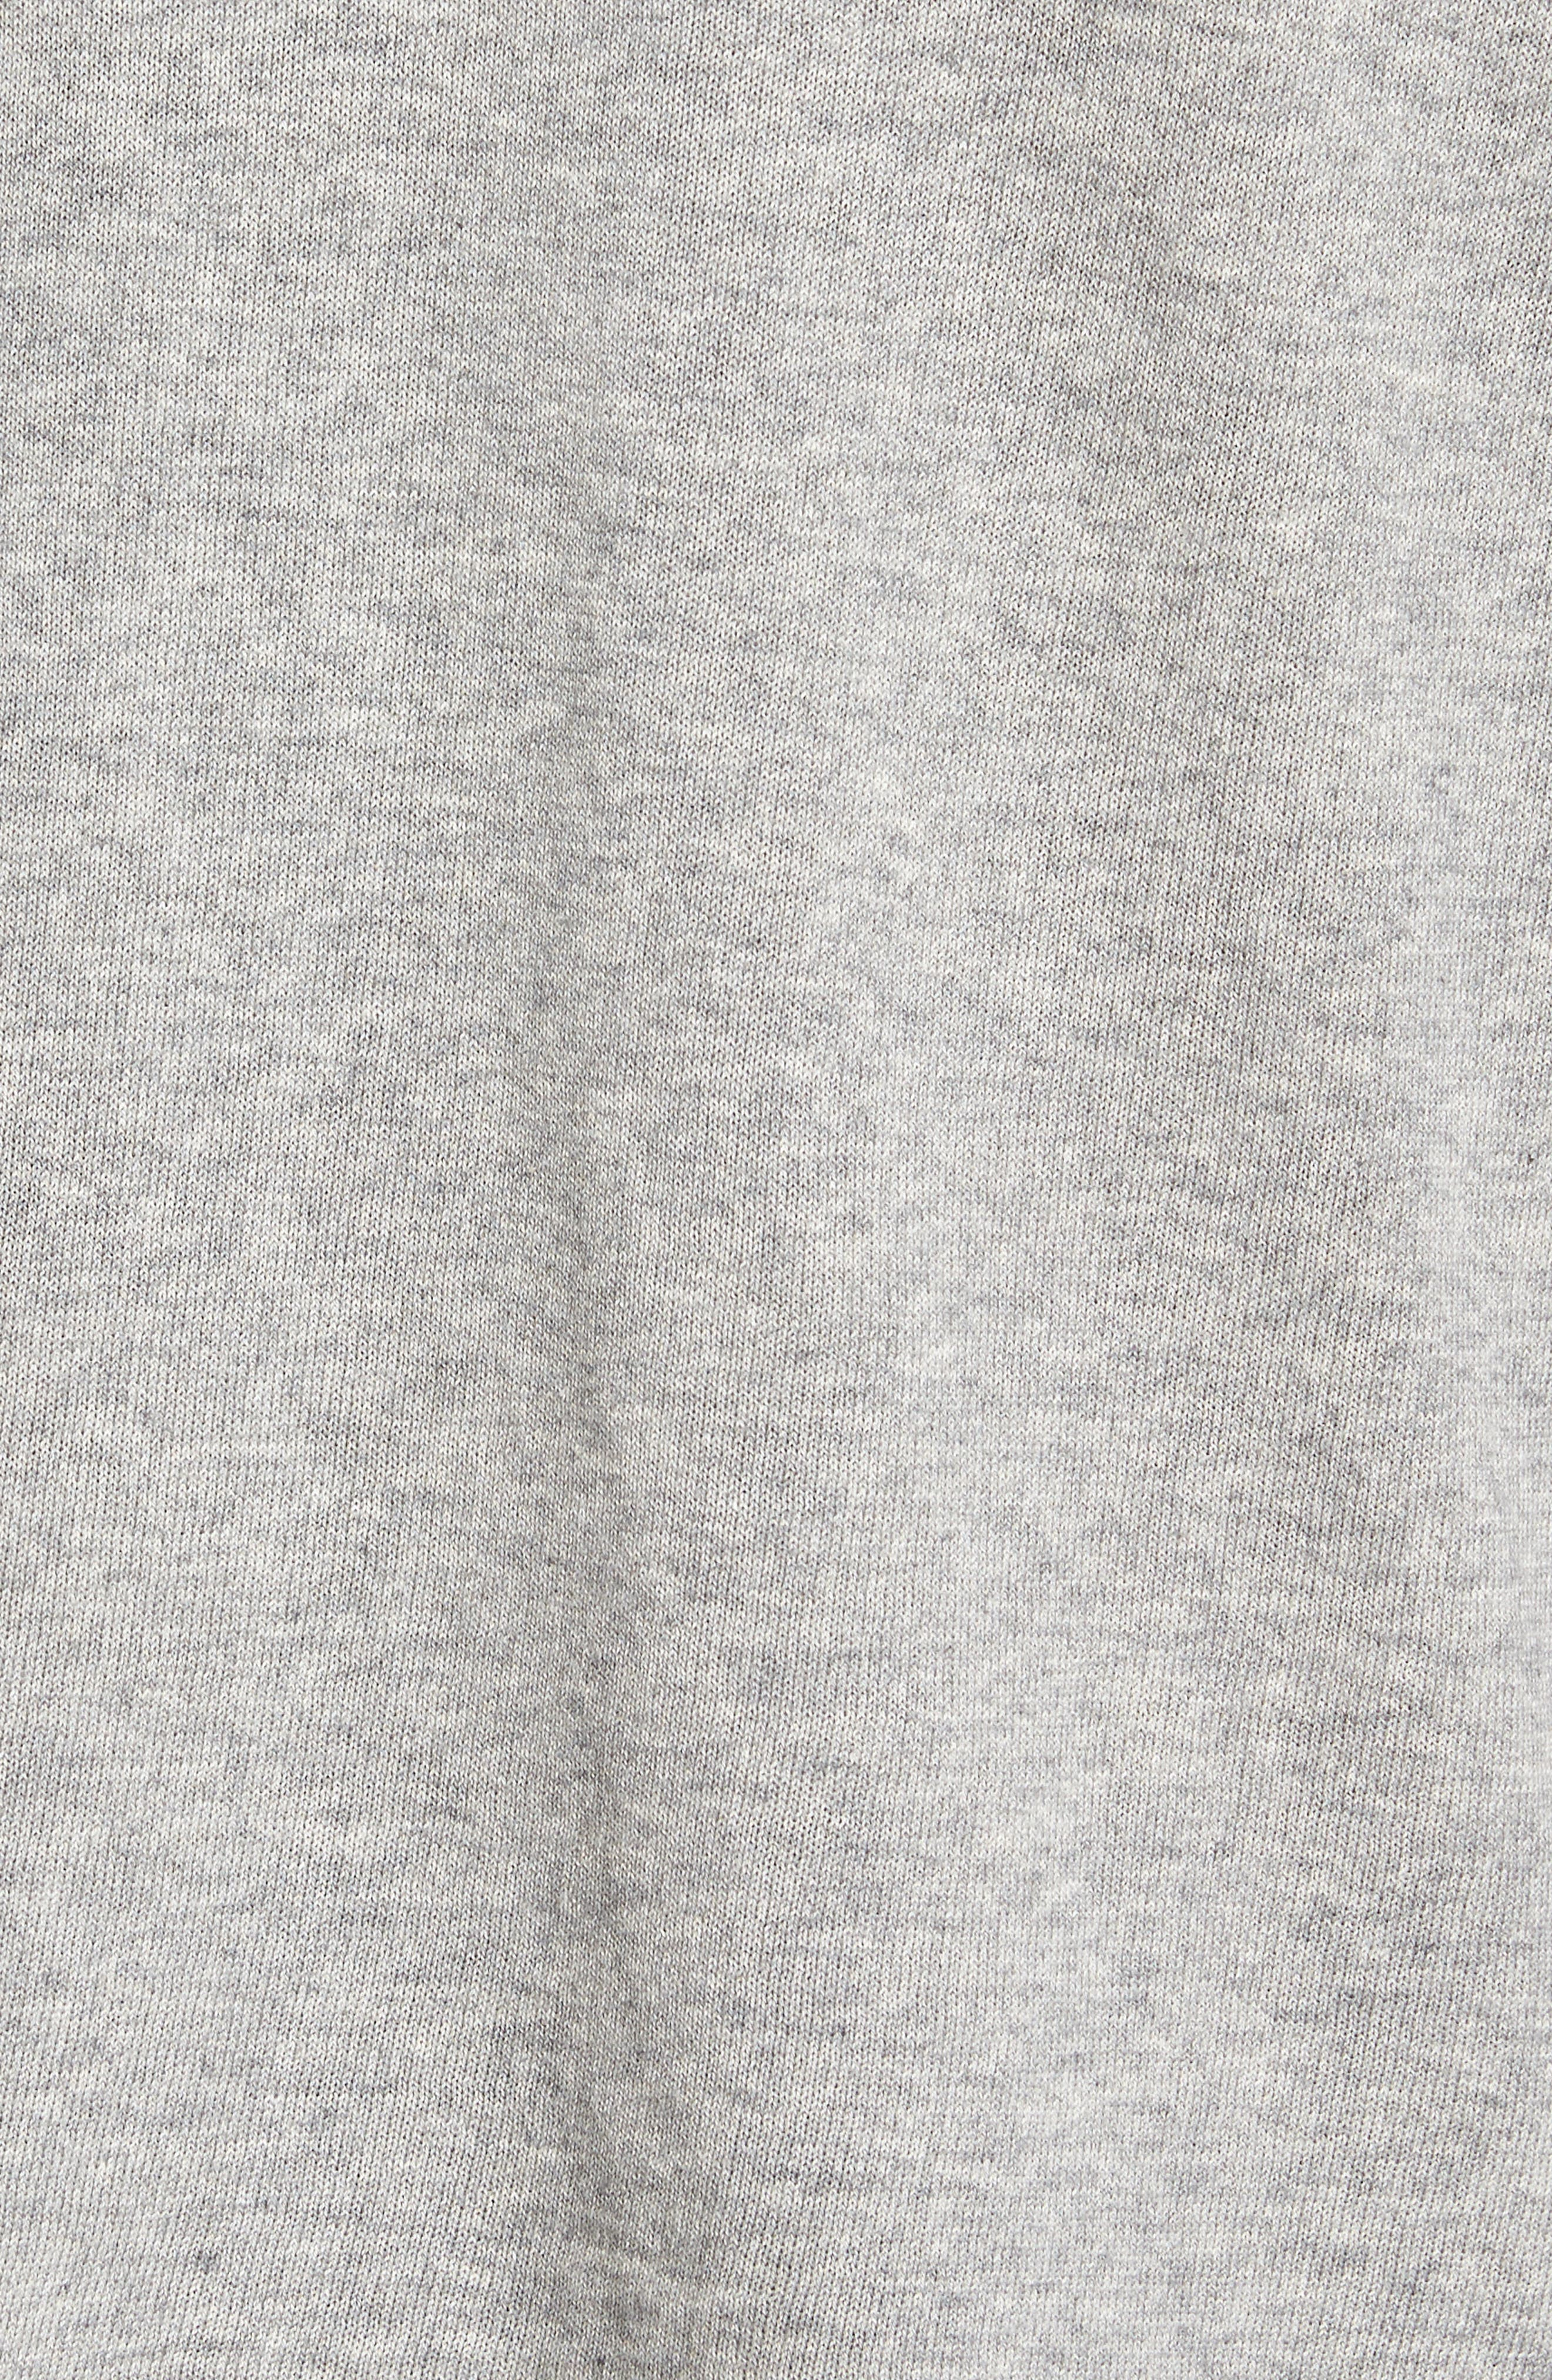 Hess Wool Turtleneck Sweater,                             Alternate thumbnail 5, color,                             Light Grey